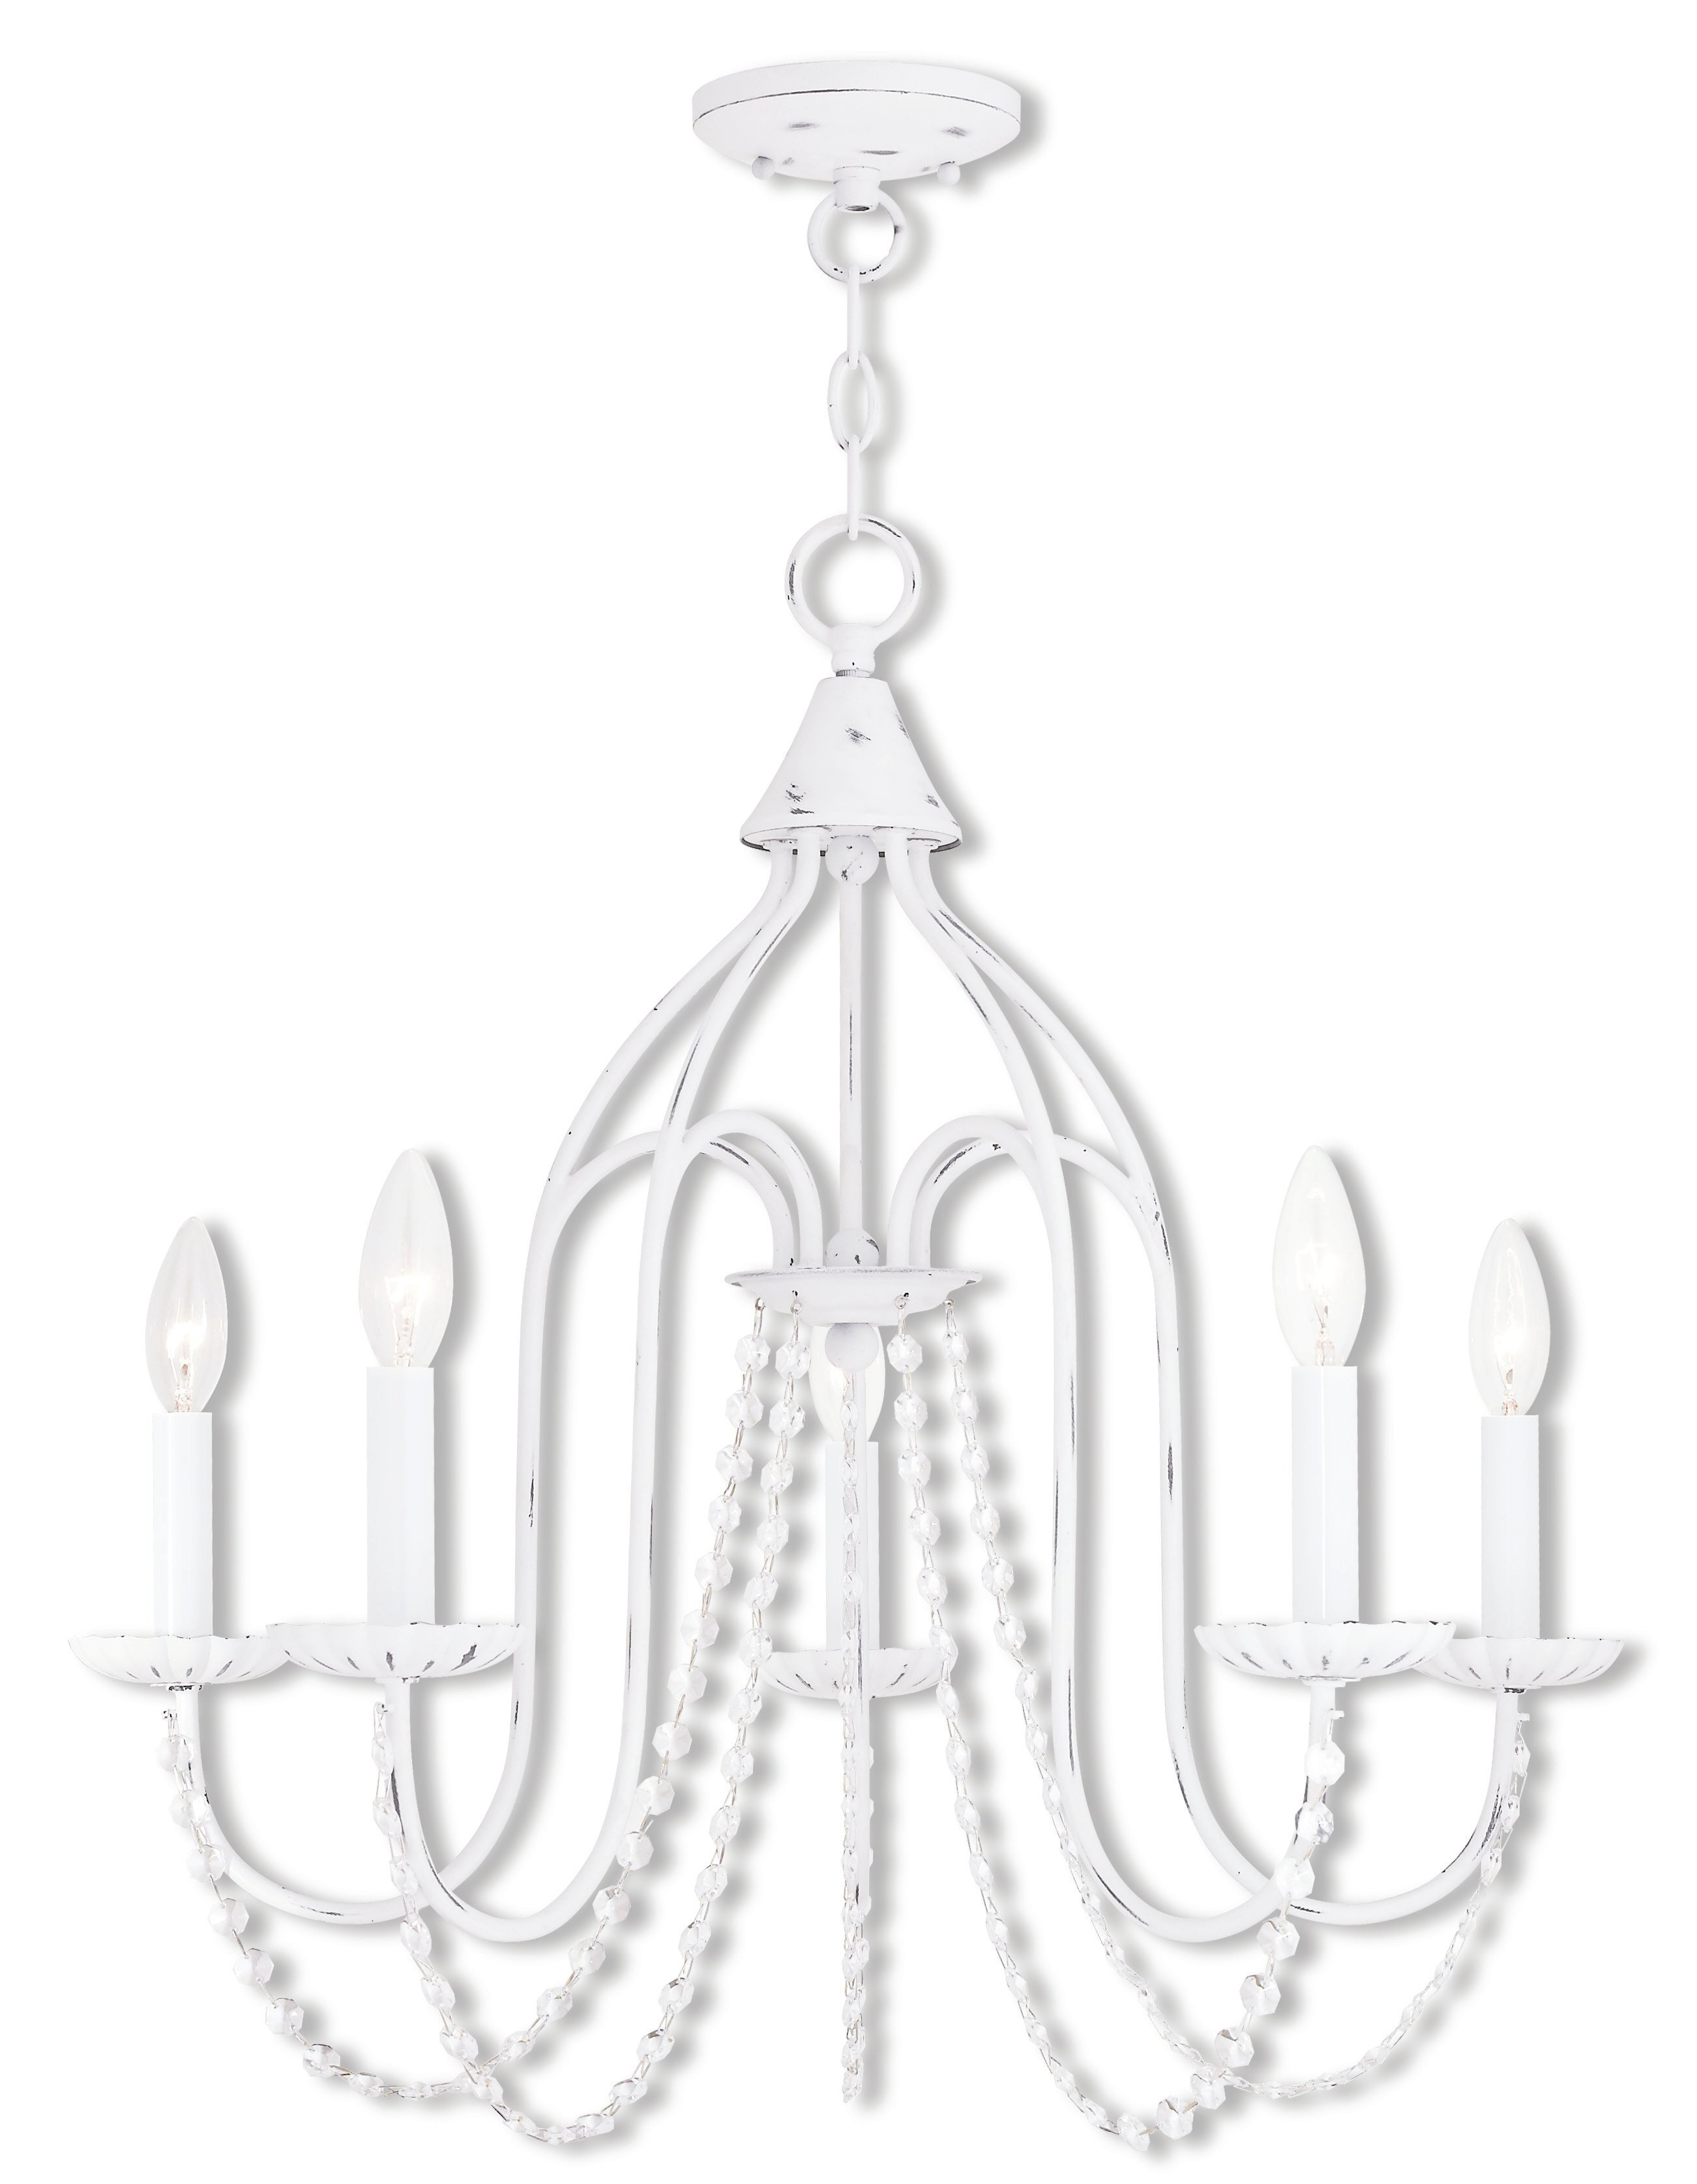 Florentina 5 Light Candle Style Chandelier For Florentina 5 Light Candle Style Chandeliers (View 4 of 30)